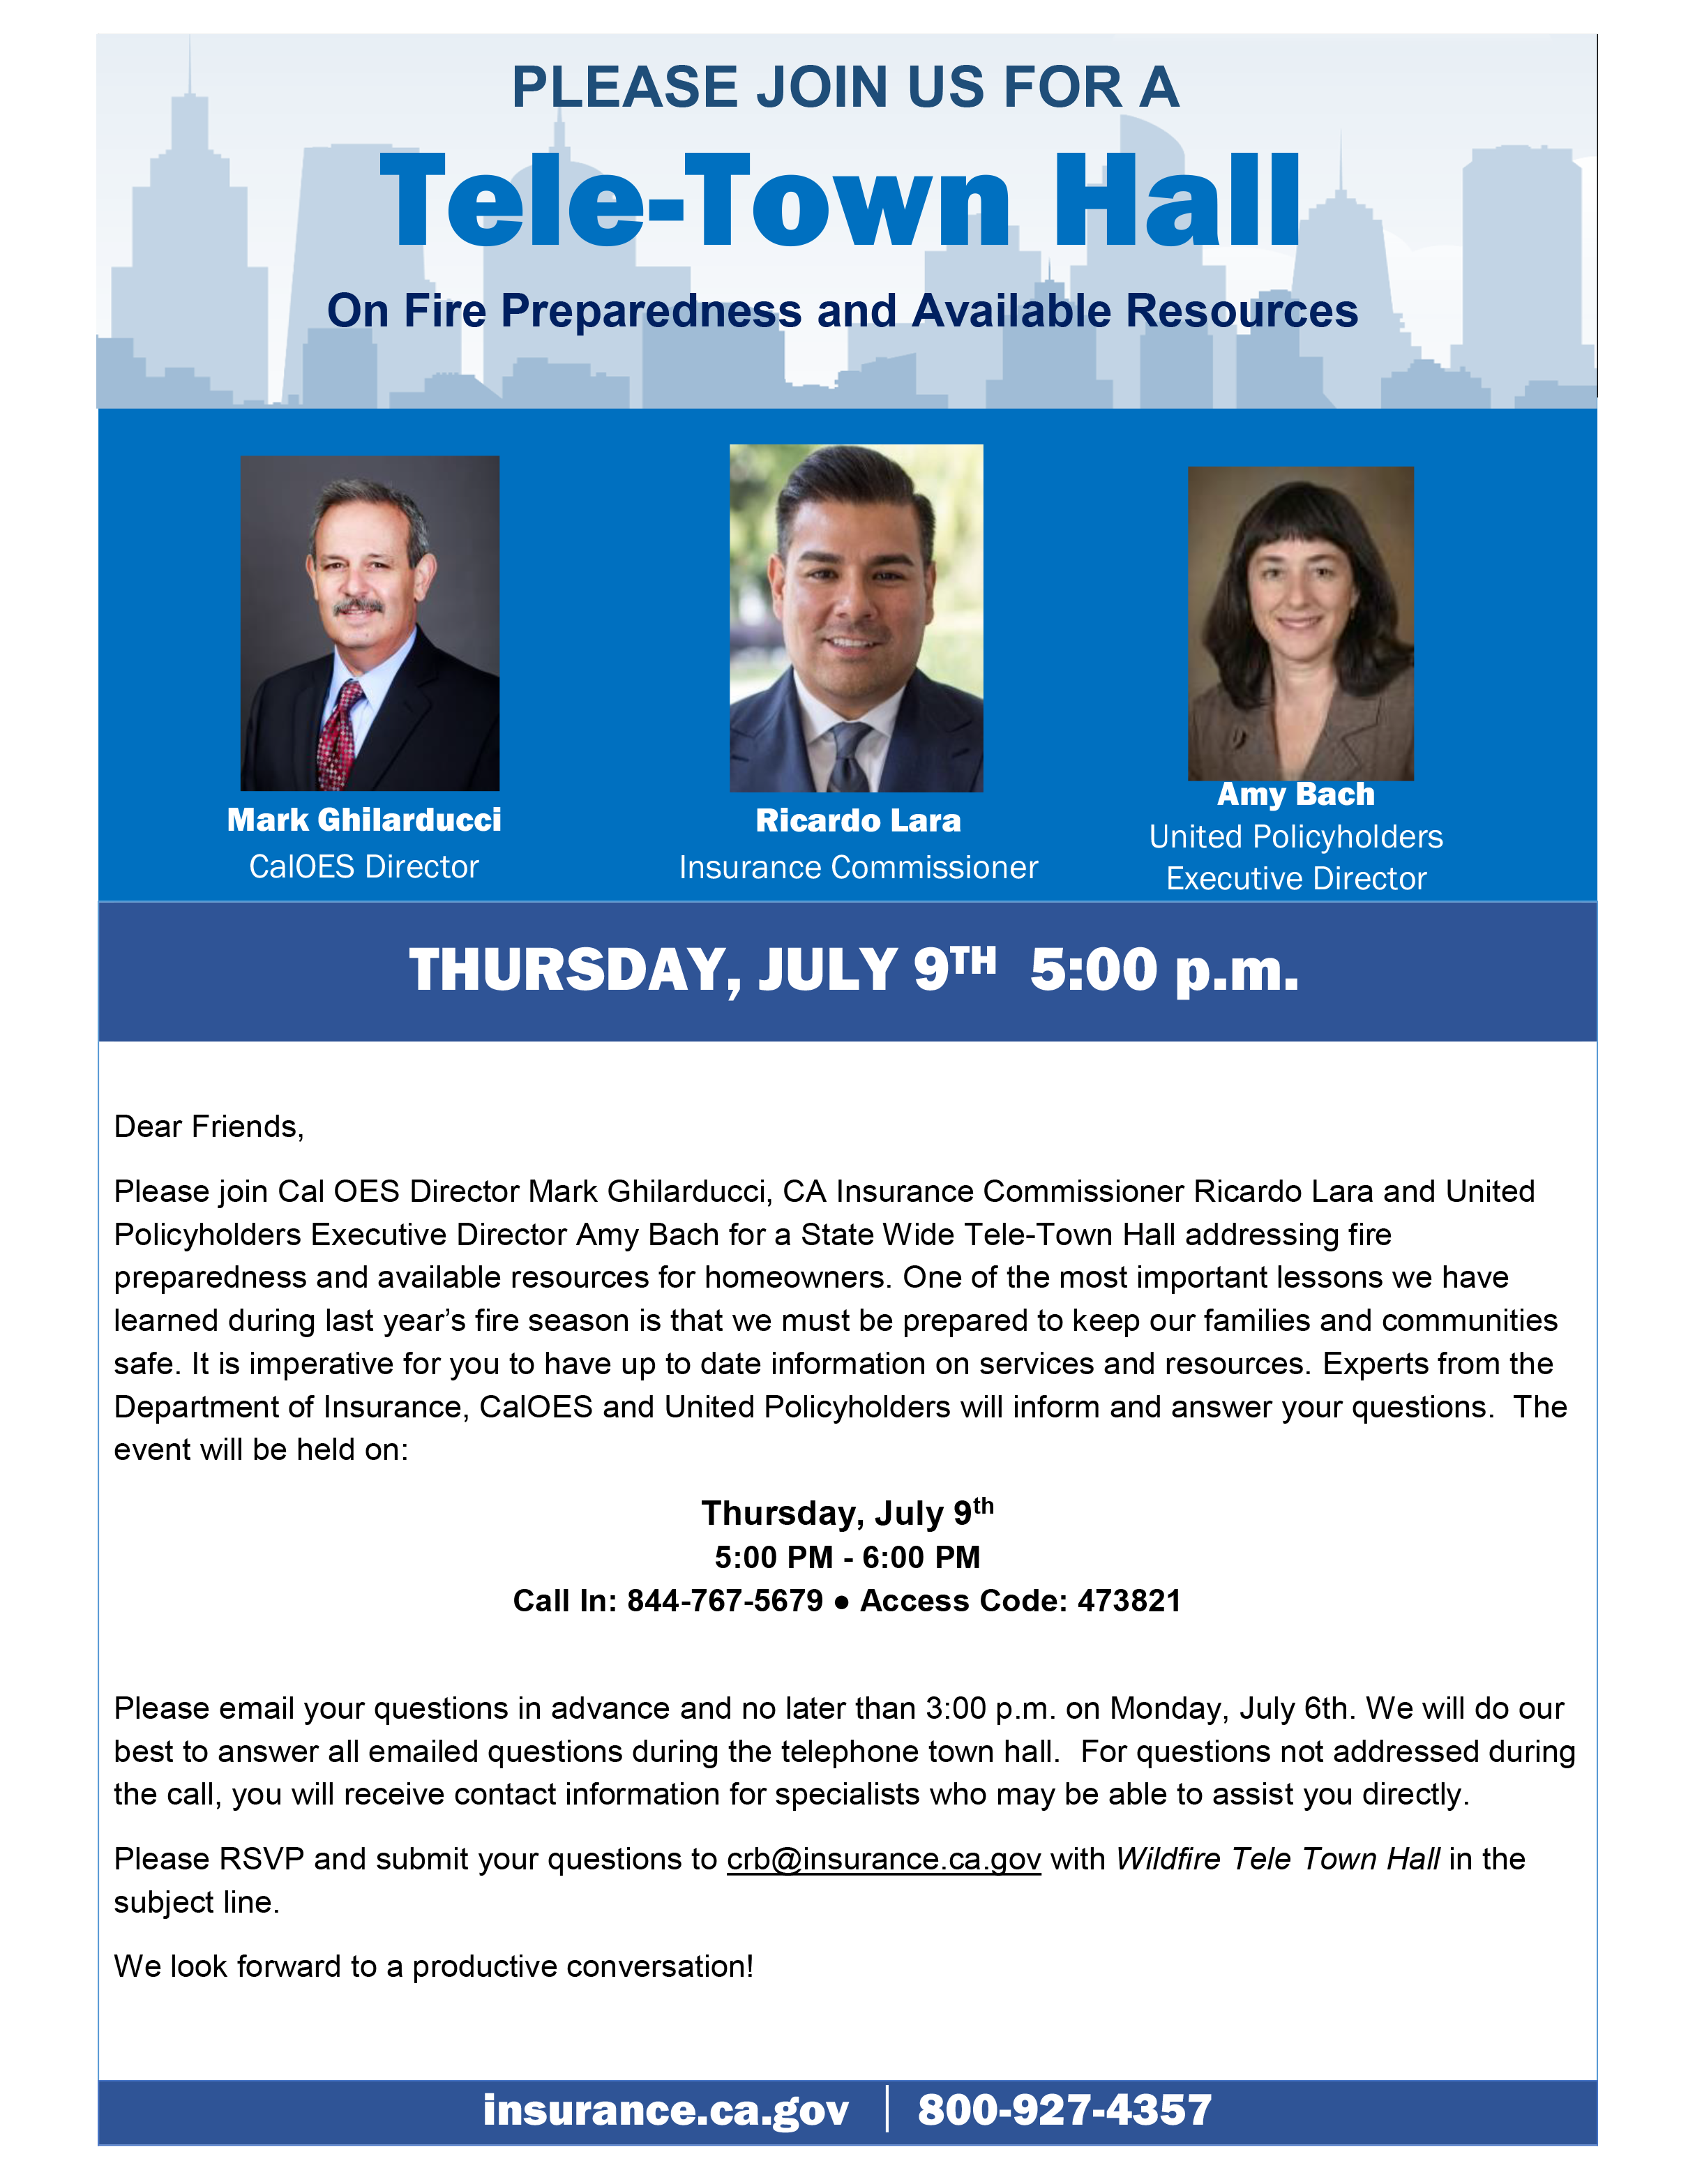 Please join Cal OES, Director Mark Ghilarducci, CA Insurance Commissioner Ricardo Lara and United Policyholders Executive Director Amy Bach for a State Wide Tele-Town Hall addressing fire preparedness and available resources for homeowners.